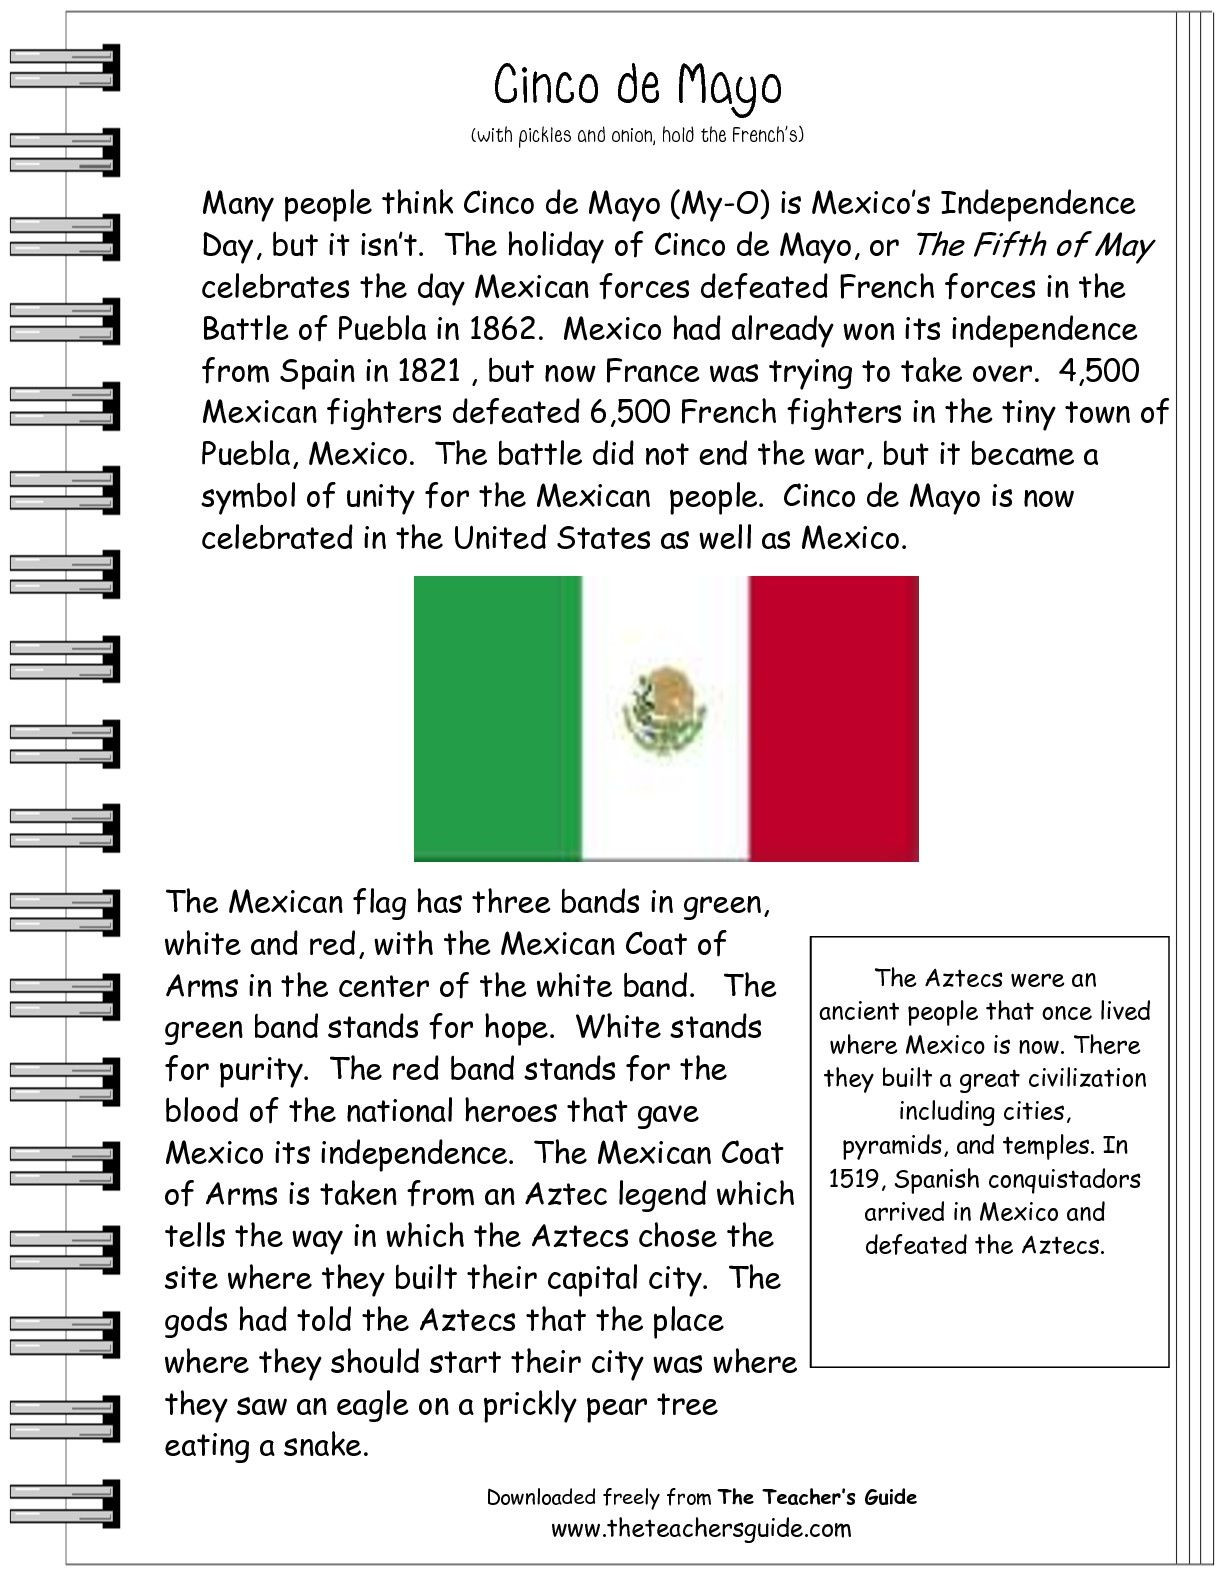 Informational Text Worksheets Middle School Informational Text Worksheets and Printouts From the